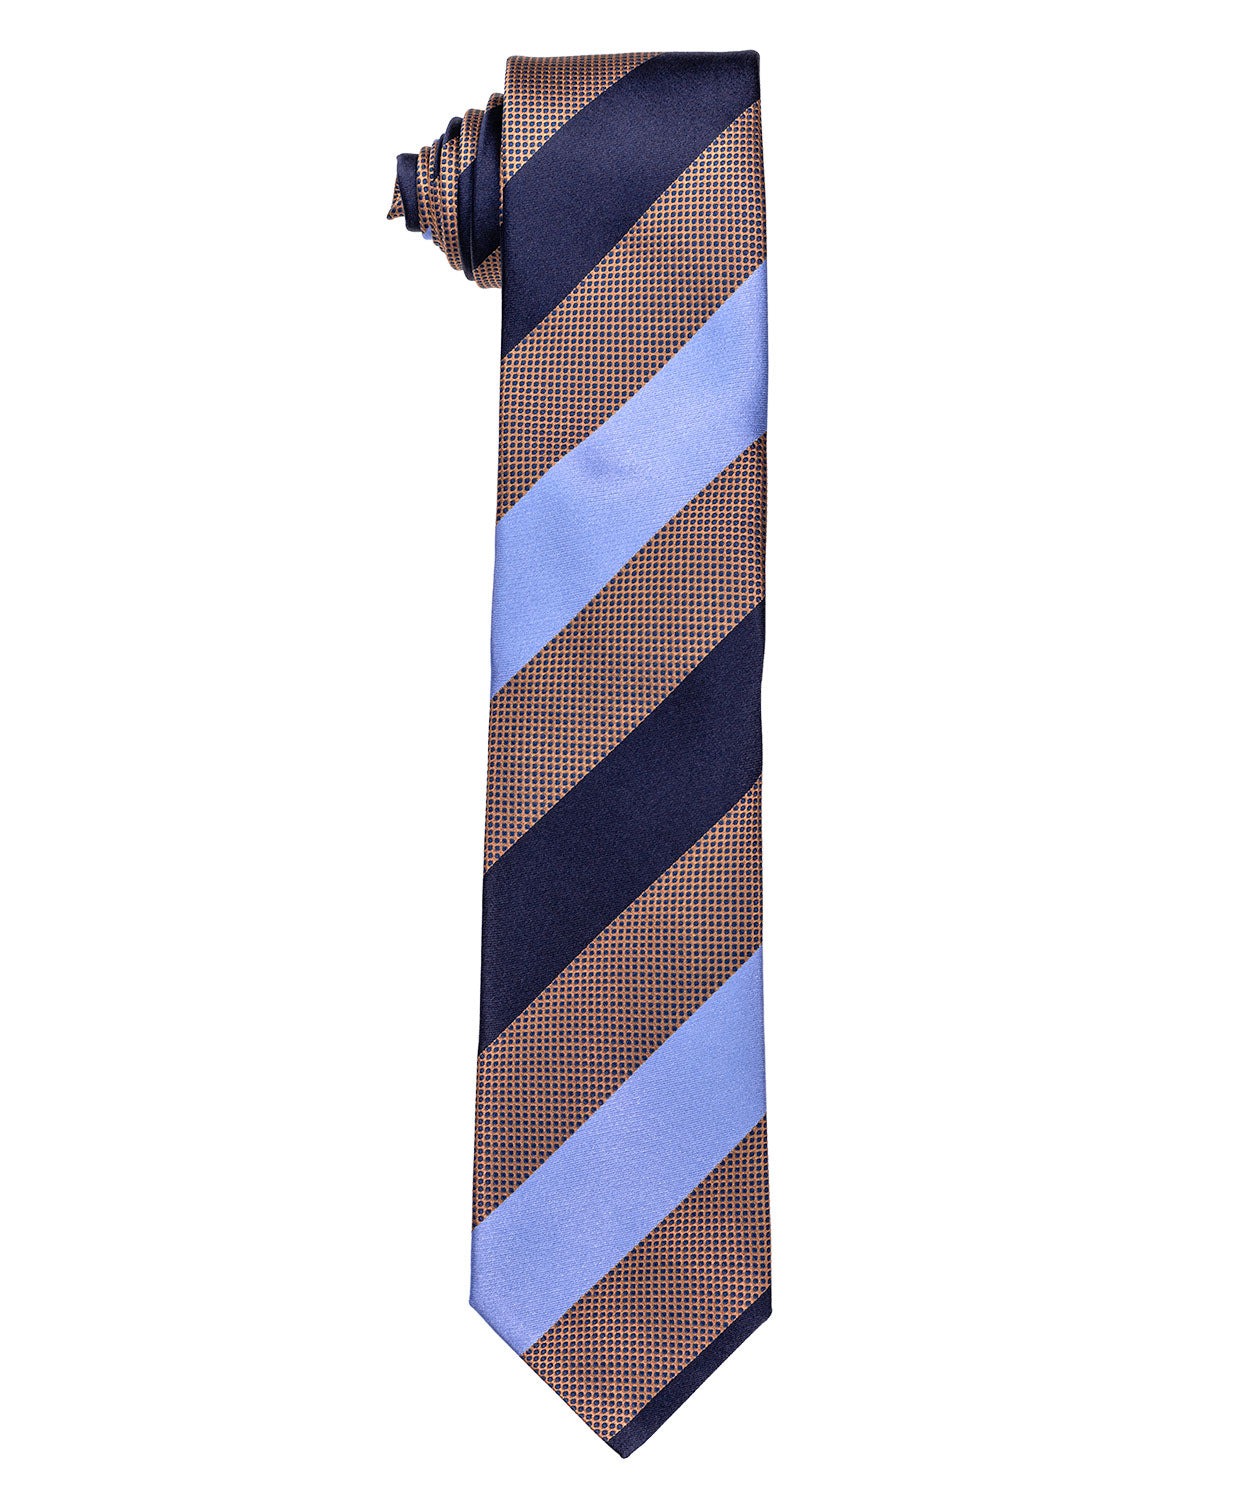 Tabacco/Blue/Navy Wide Stripe Tie